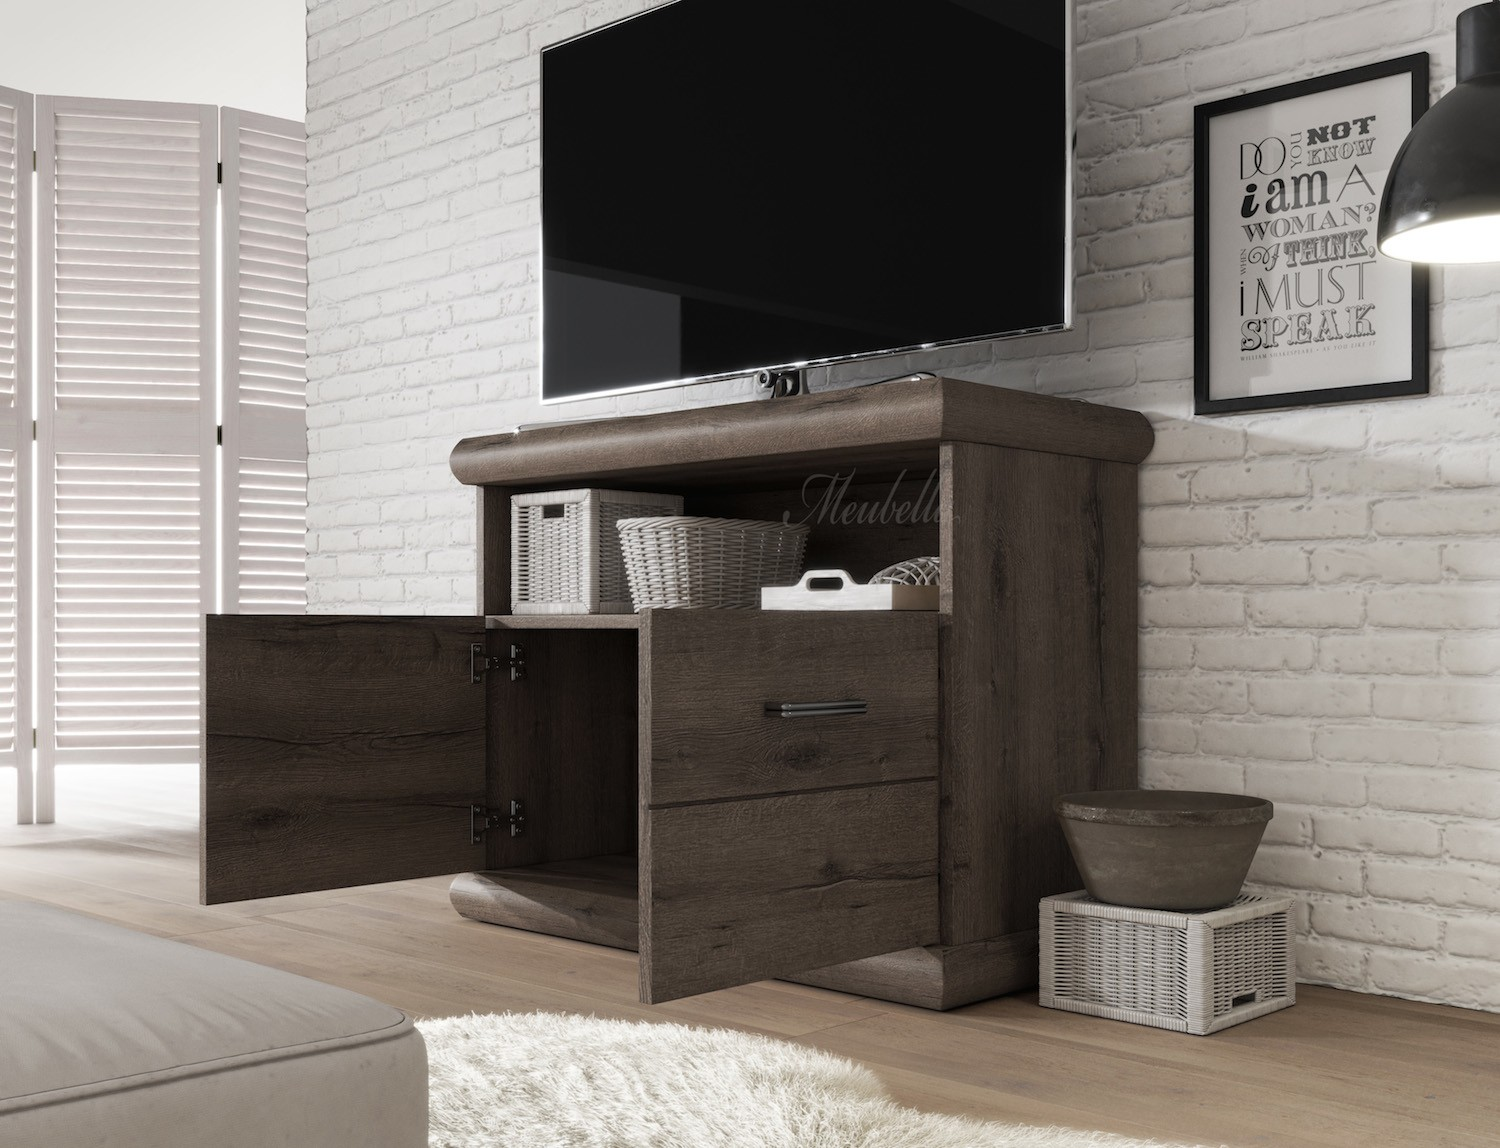 Meubel Outlet Stolwijk : Tv meubel outlet design tv mbel design cool build tv furniture